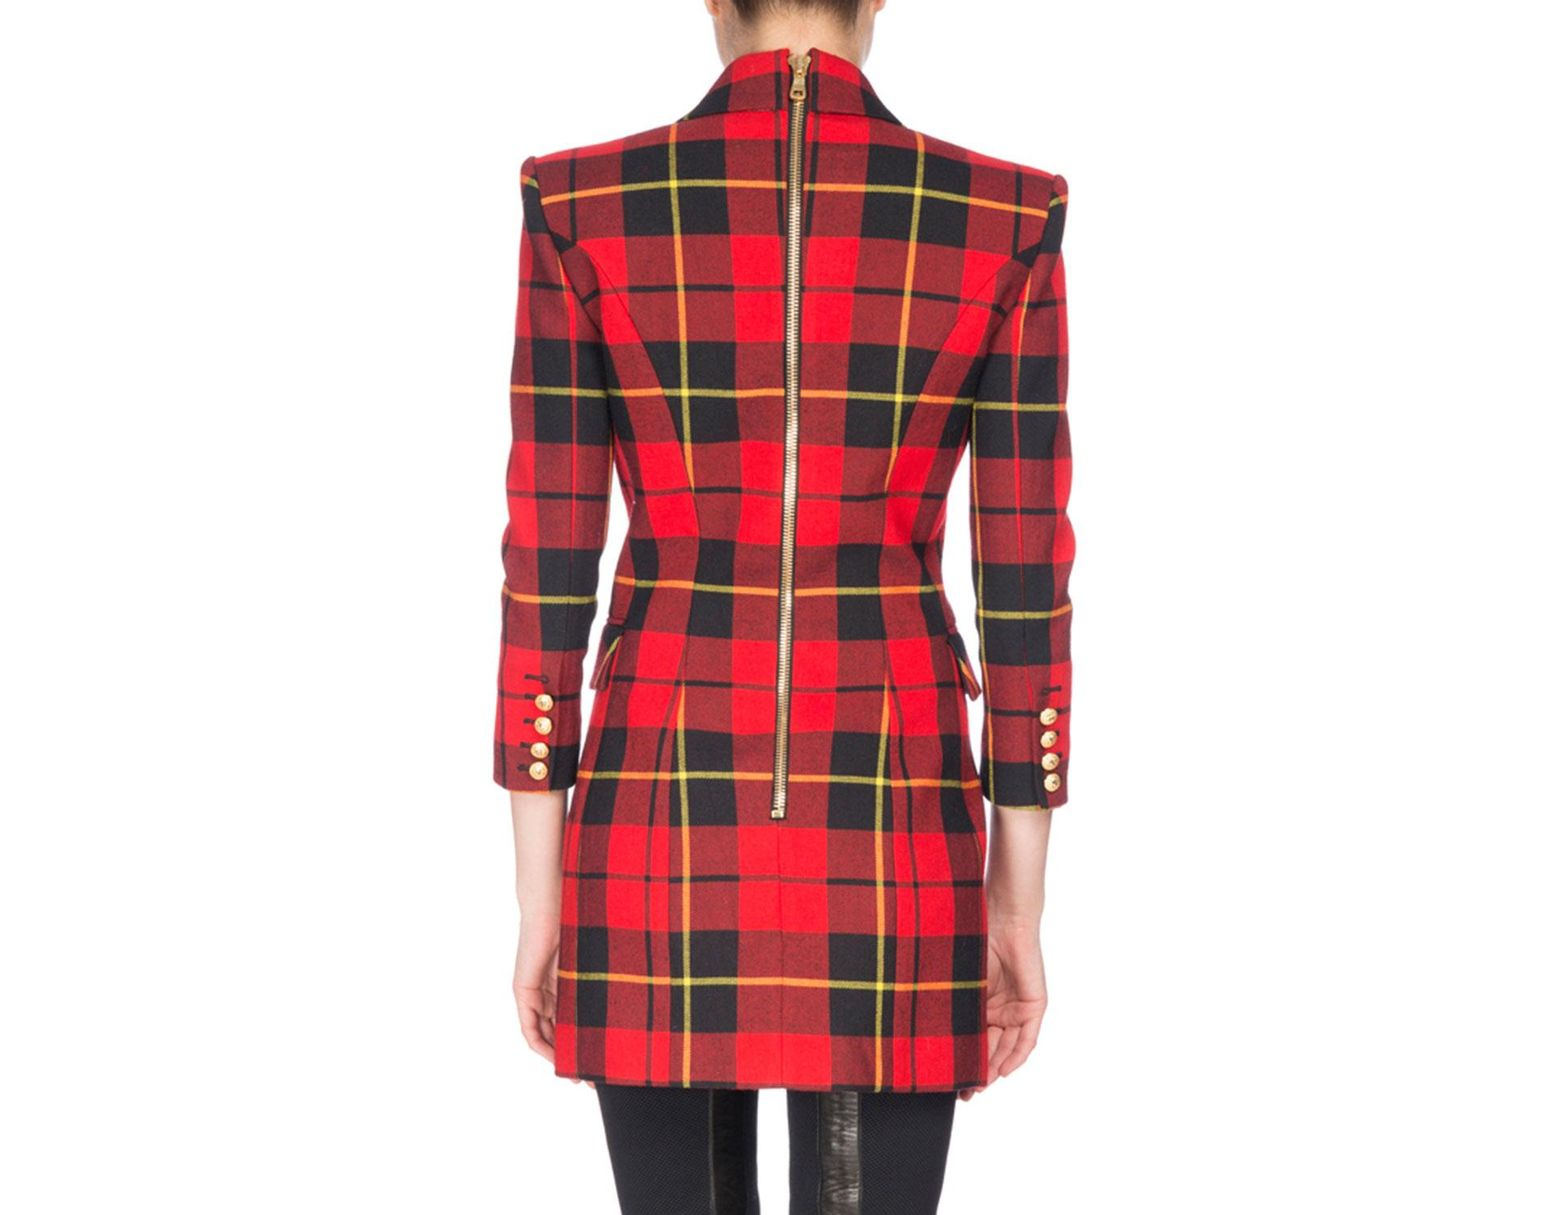 0323c33e Balmain Tartan Double-breasted Minidress Red/black in Red - Lyst